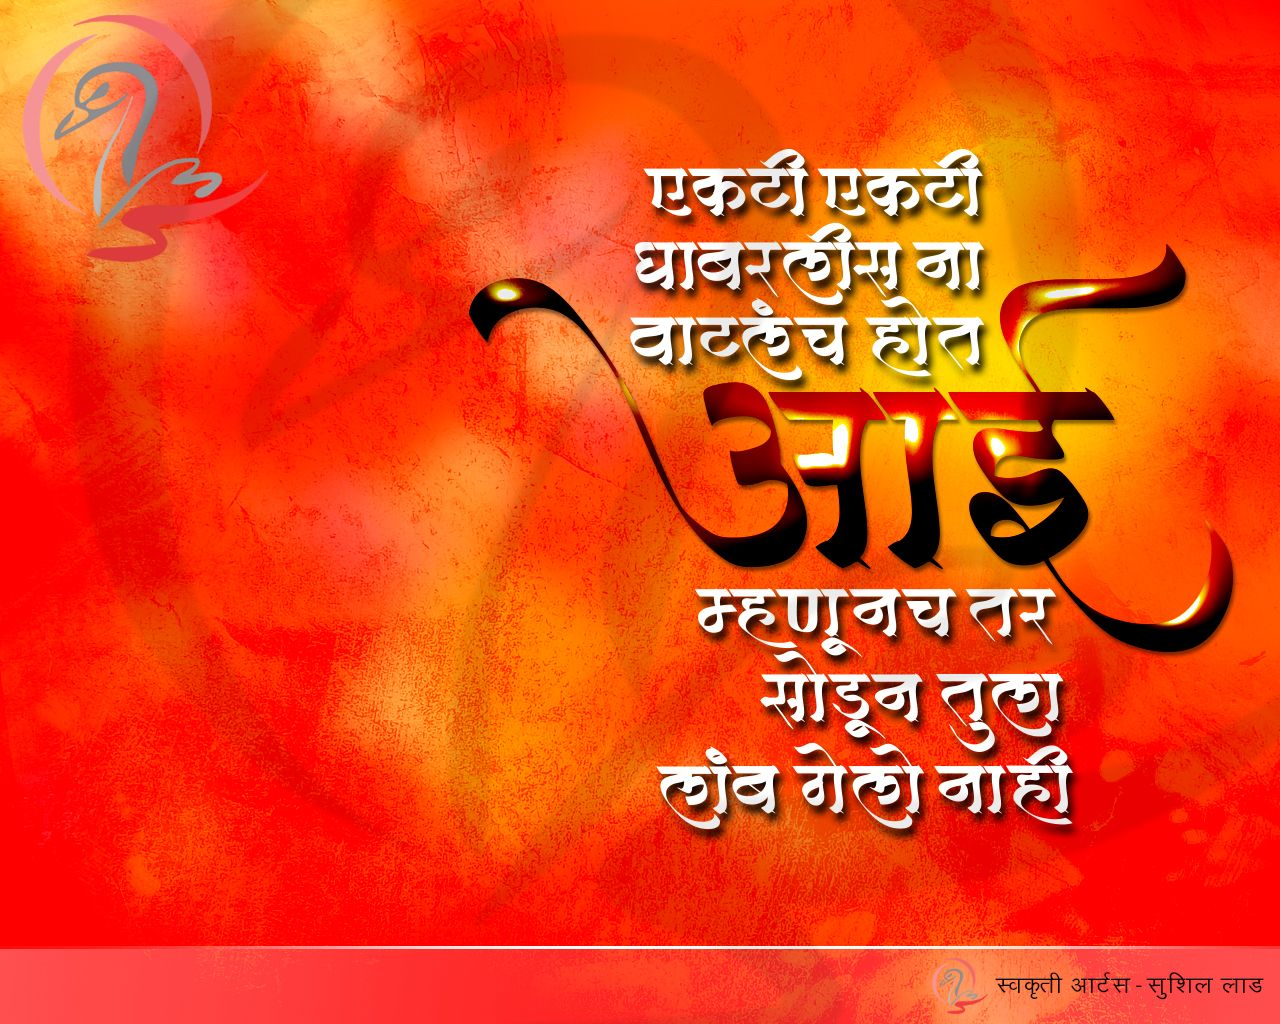 Pin by sushil lad on marathi calligraphy Unique quotes